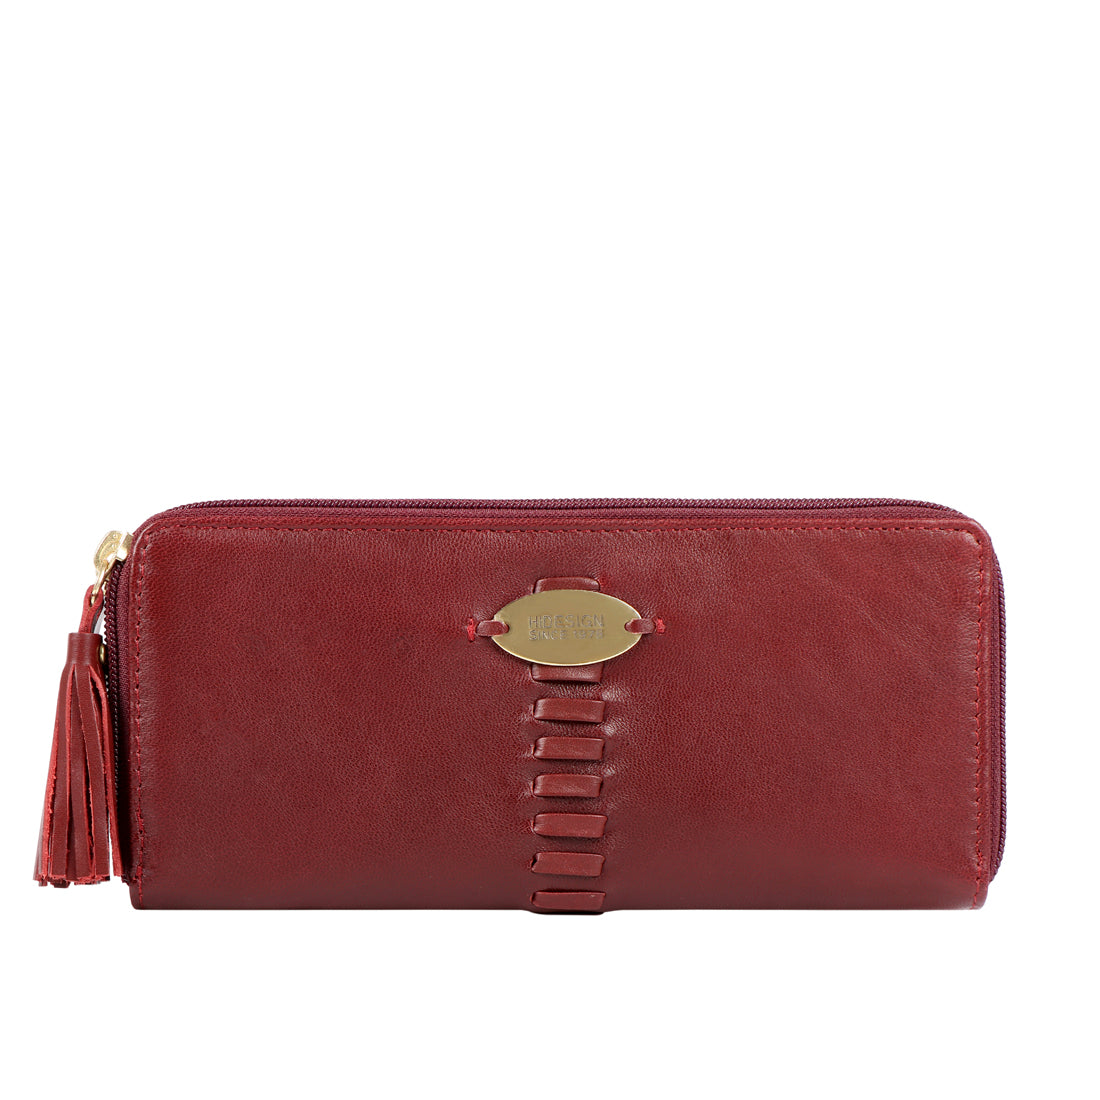 RHUBARB W1 DOUBLE ZIP AROUND WALLET